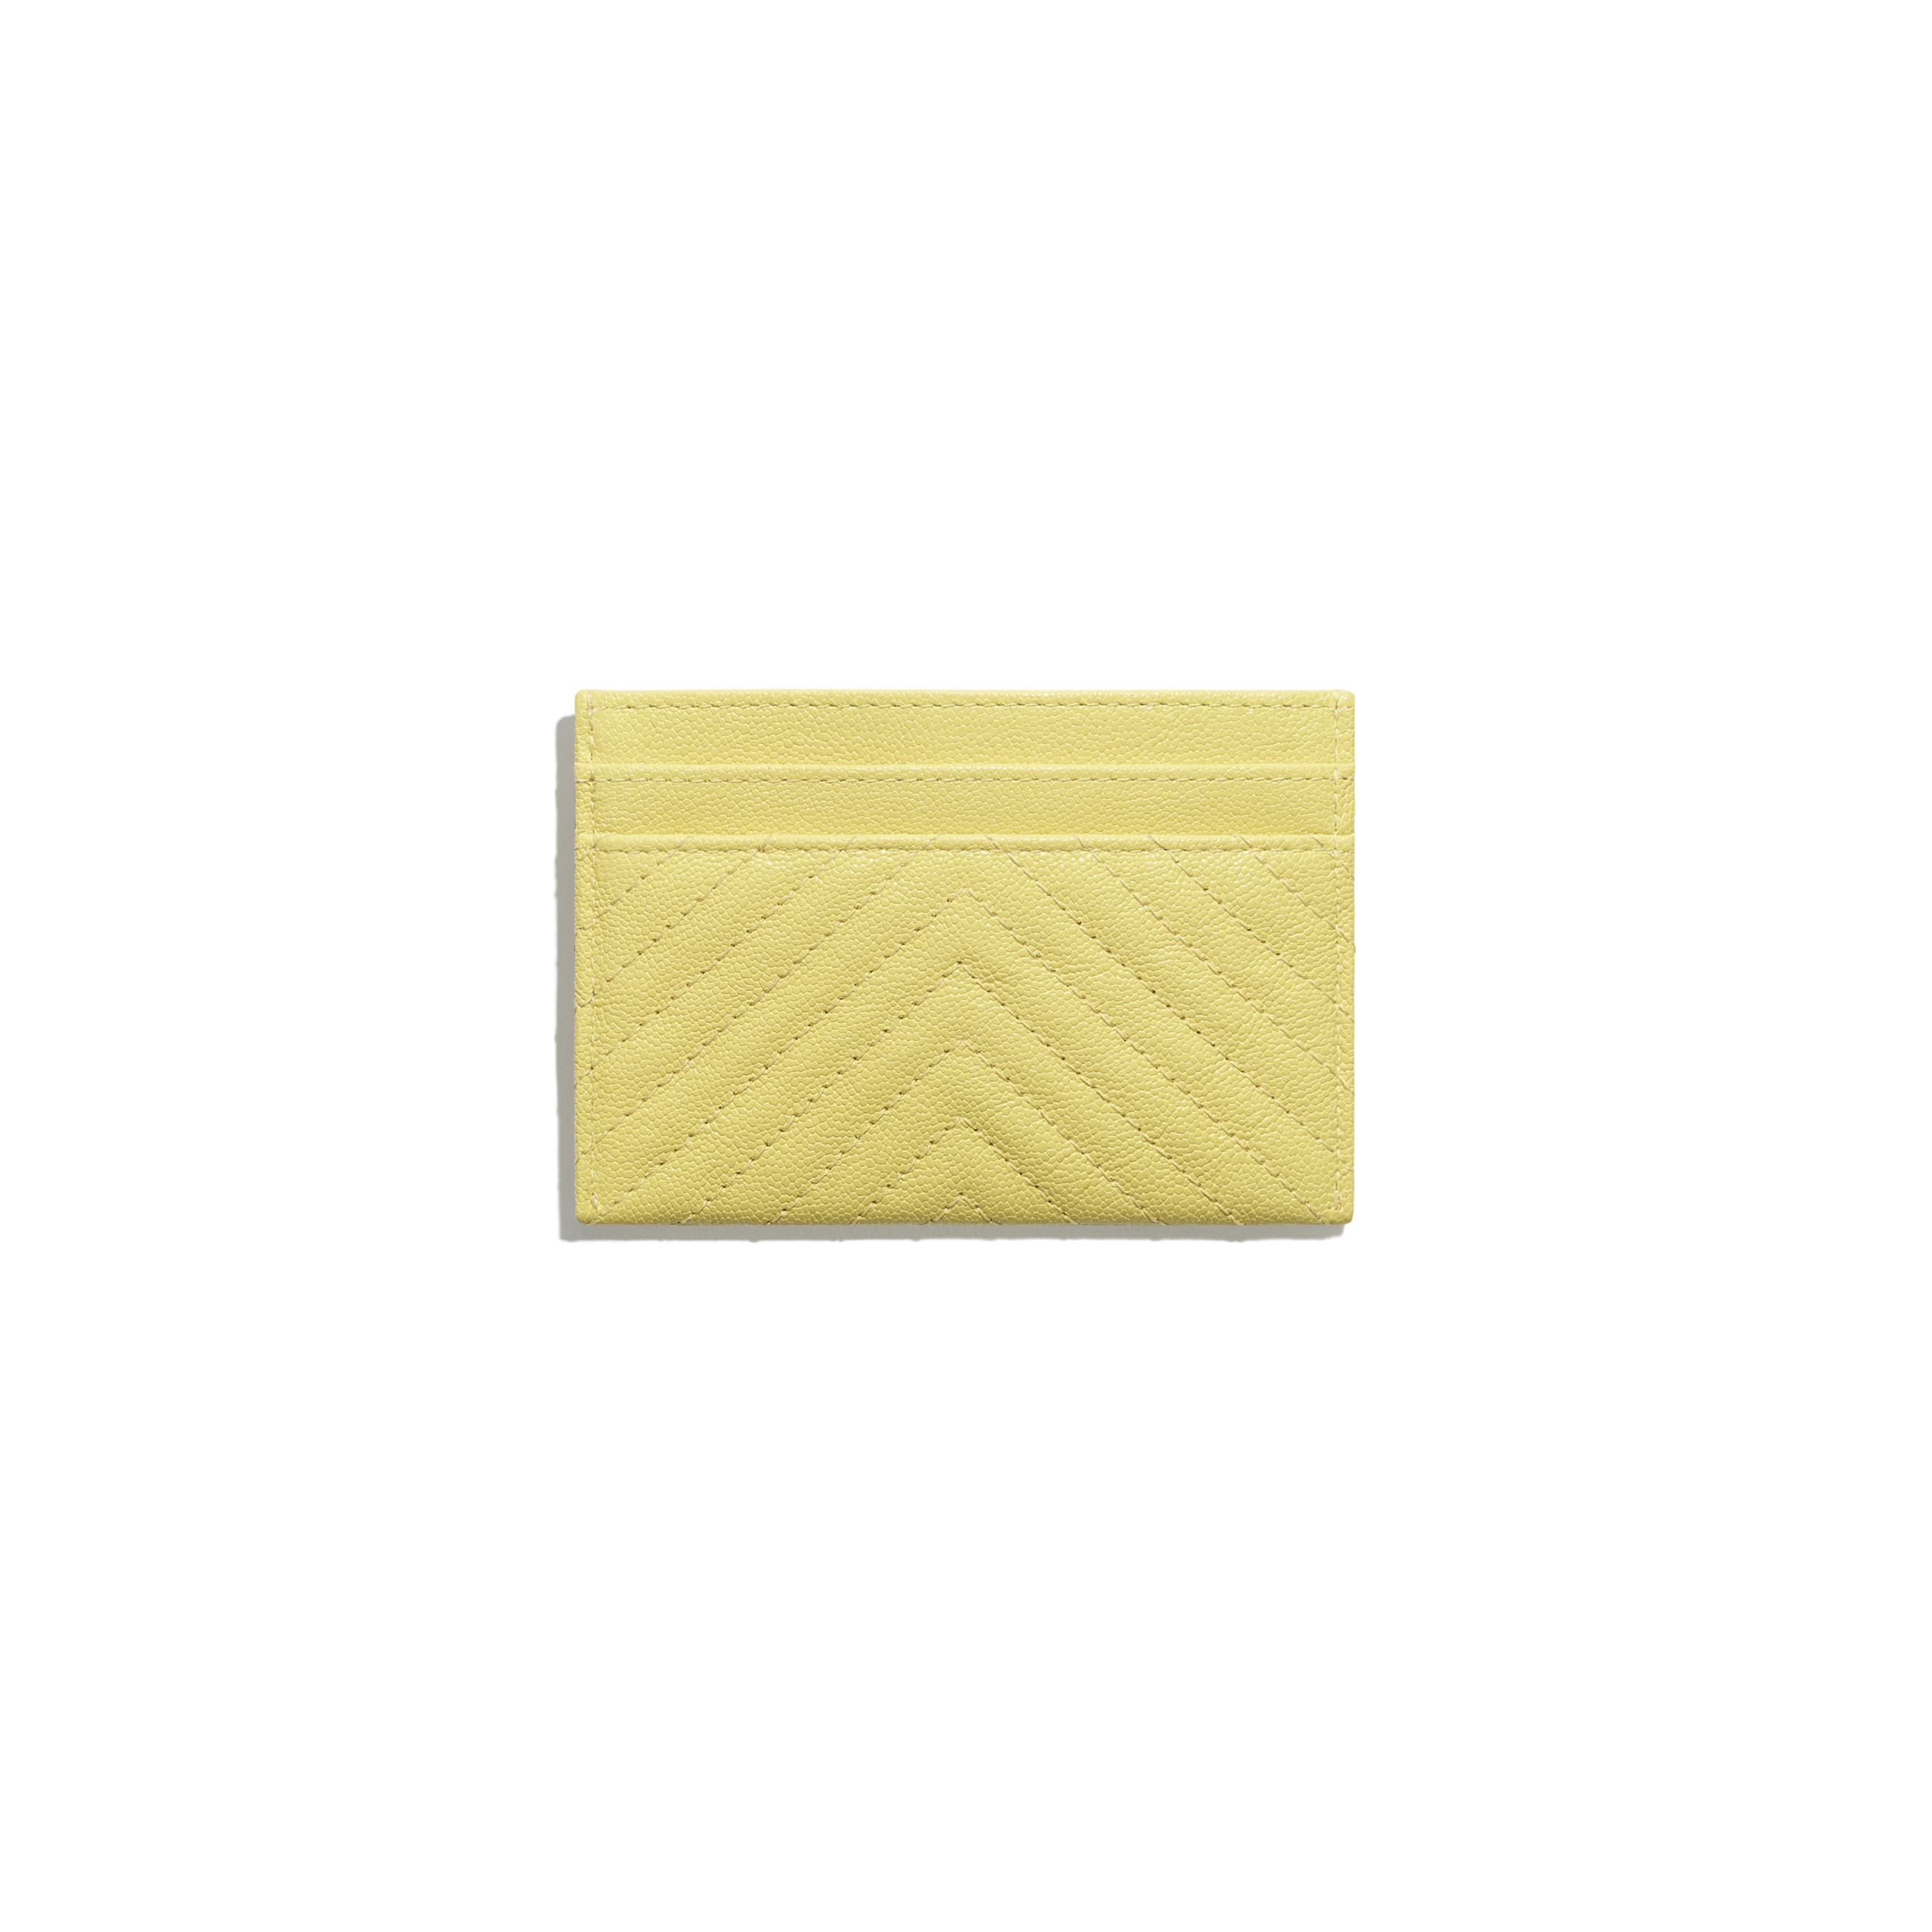 BOY CHANEL Card Holder - Yellow - Grained Calfskin & Gold-Tone Metal - CHANEL - Alternative view - see standard sized version